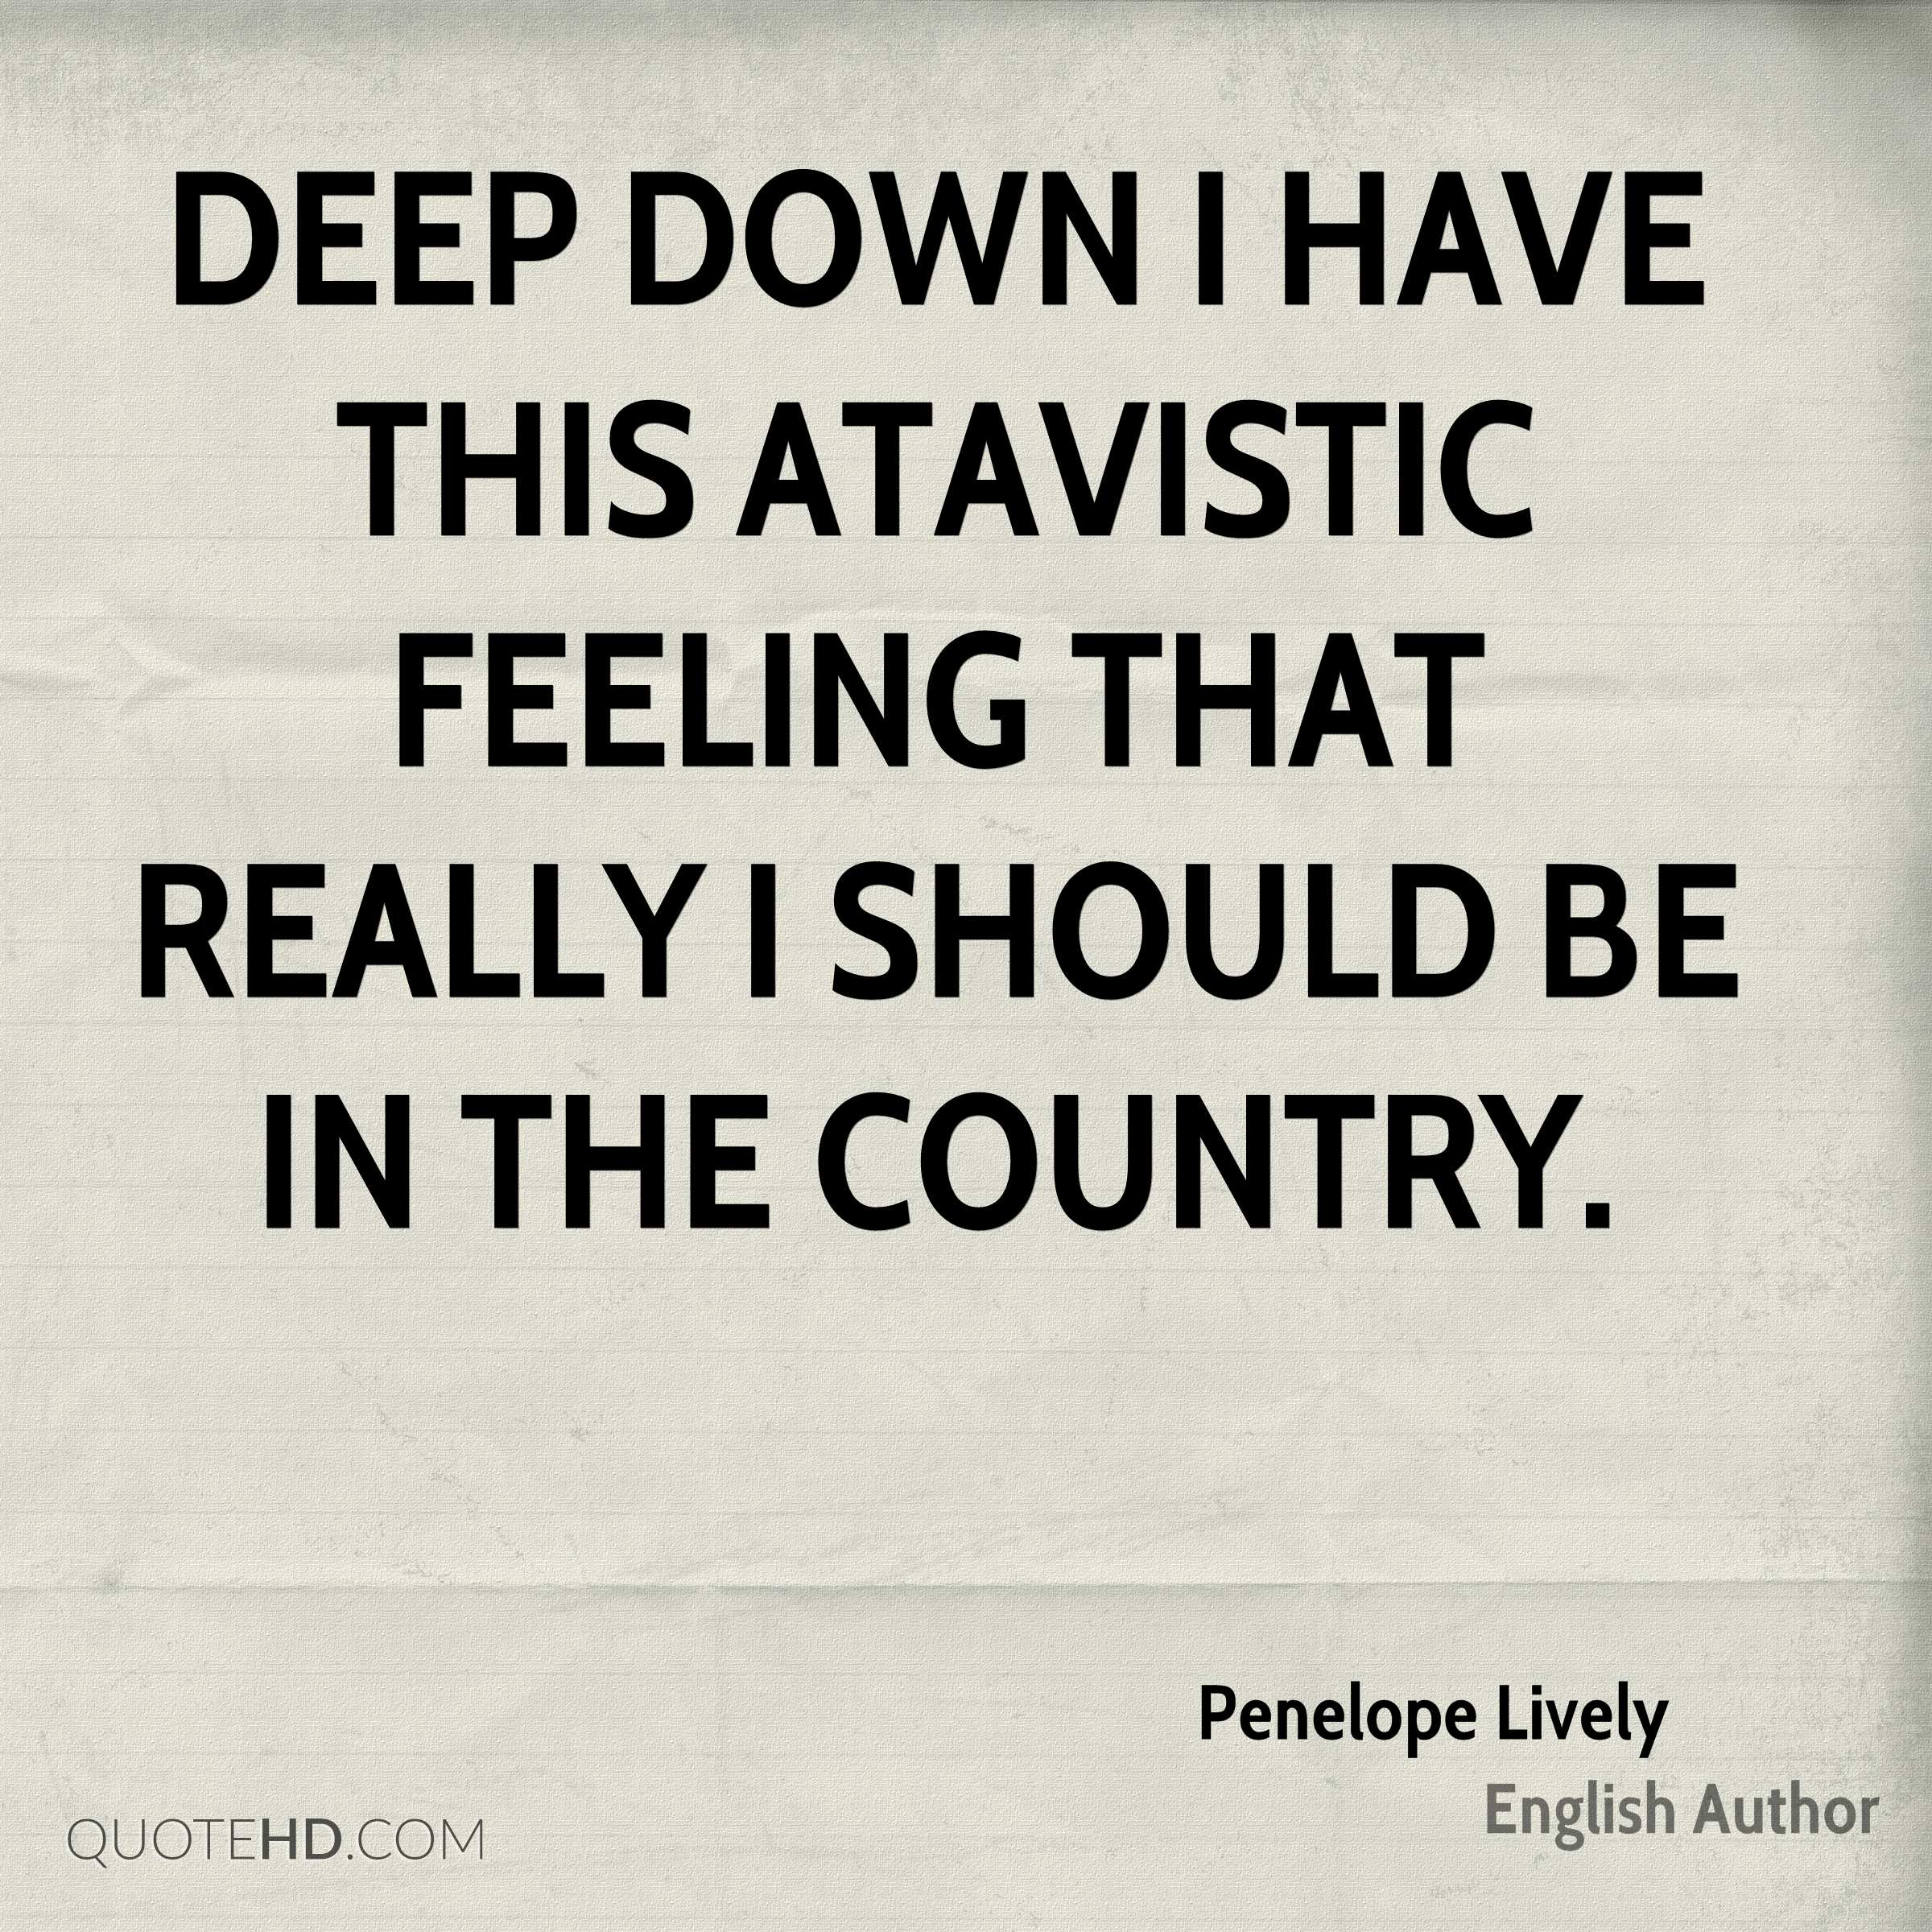 Deep down I have this atavistic feeling that really I should be in the country.